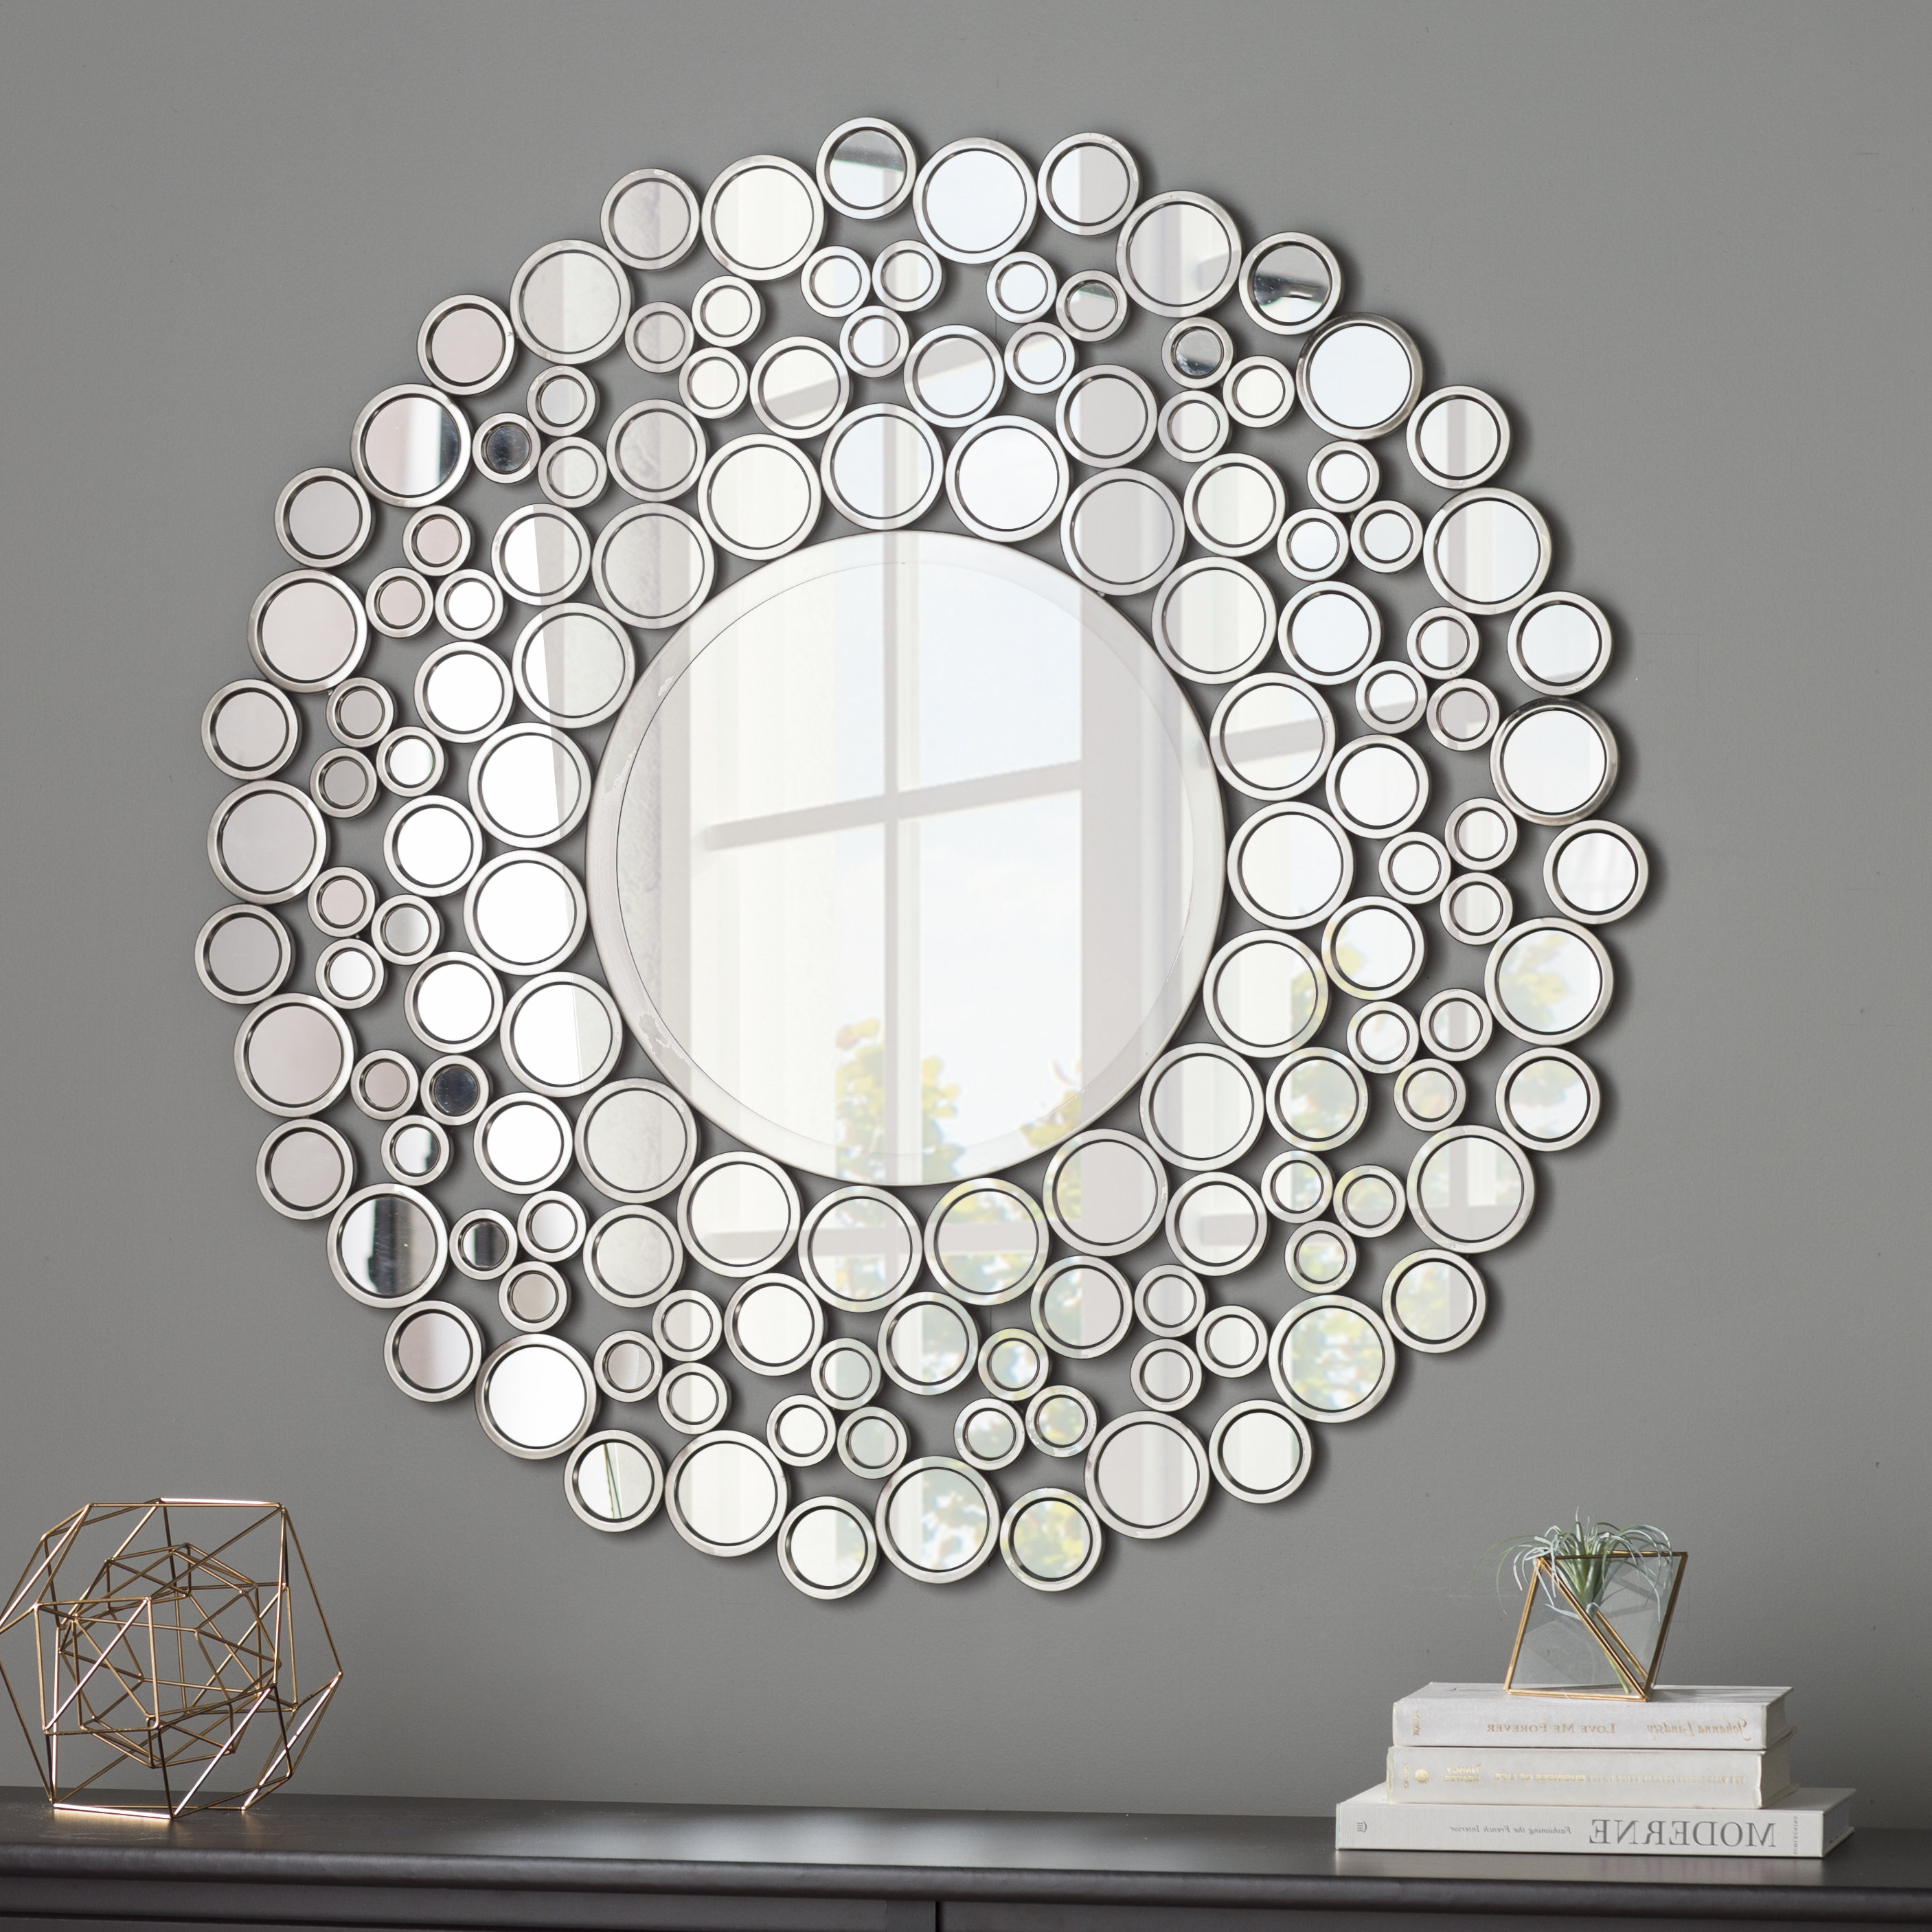 Kentwood Round Wall Mirror In Most Up To Date Kentwood Round Wall Mirrors (Gallery 2 of 20)